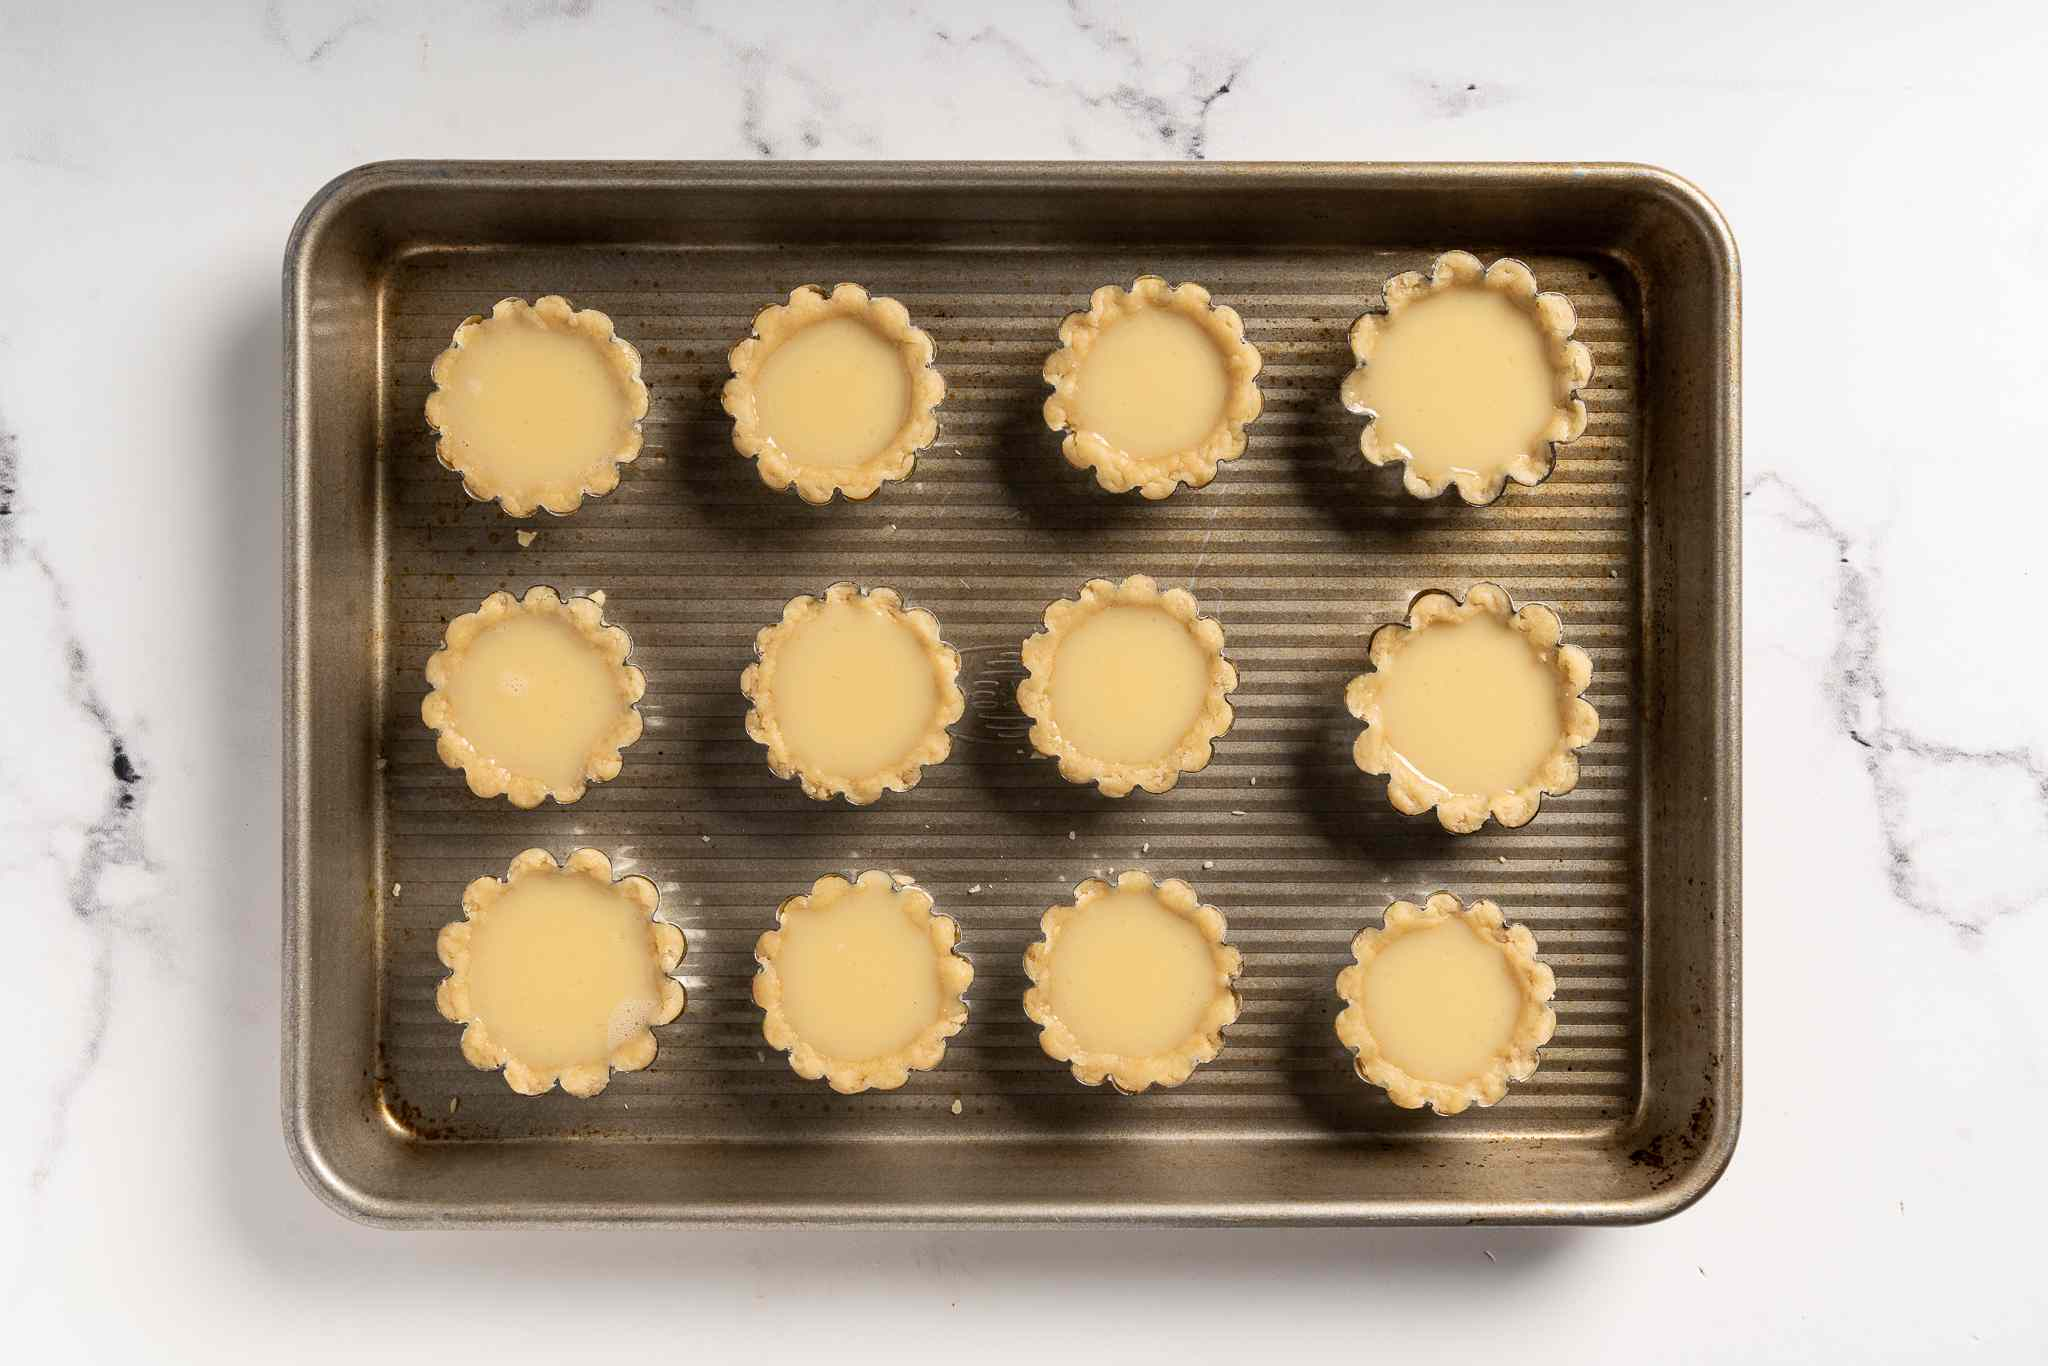 Unbaked Egg Tarts on a tray